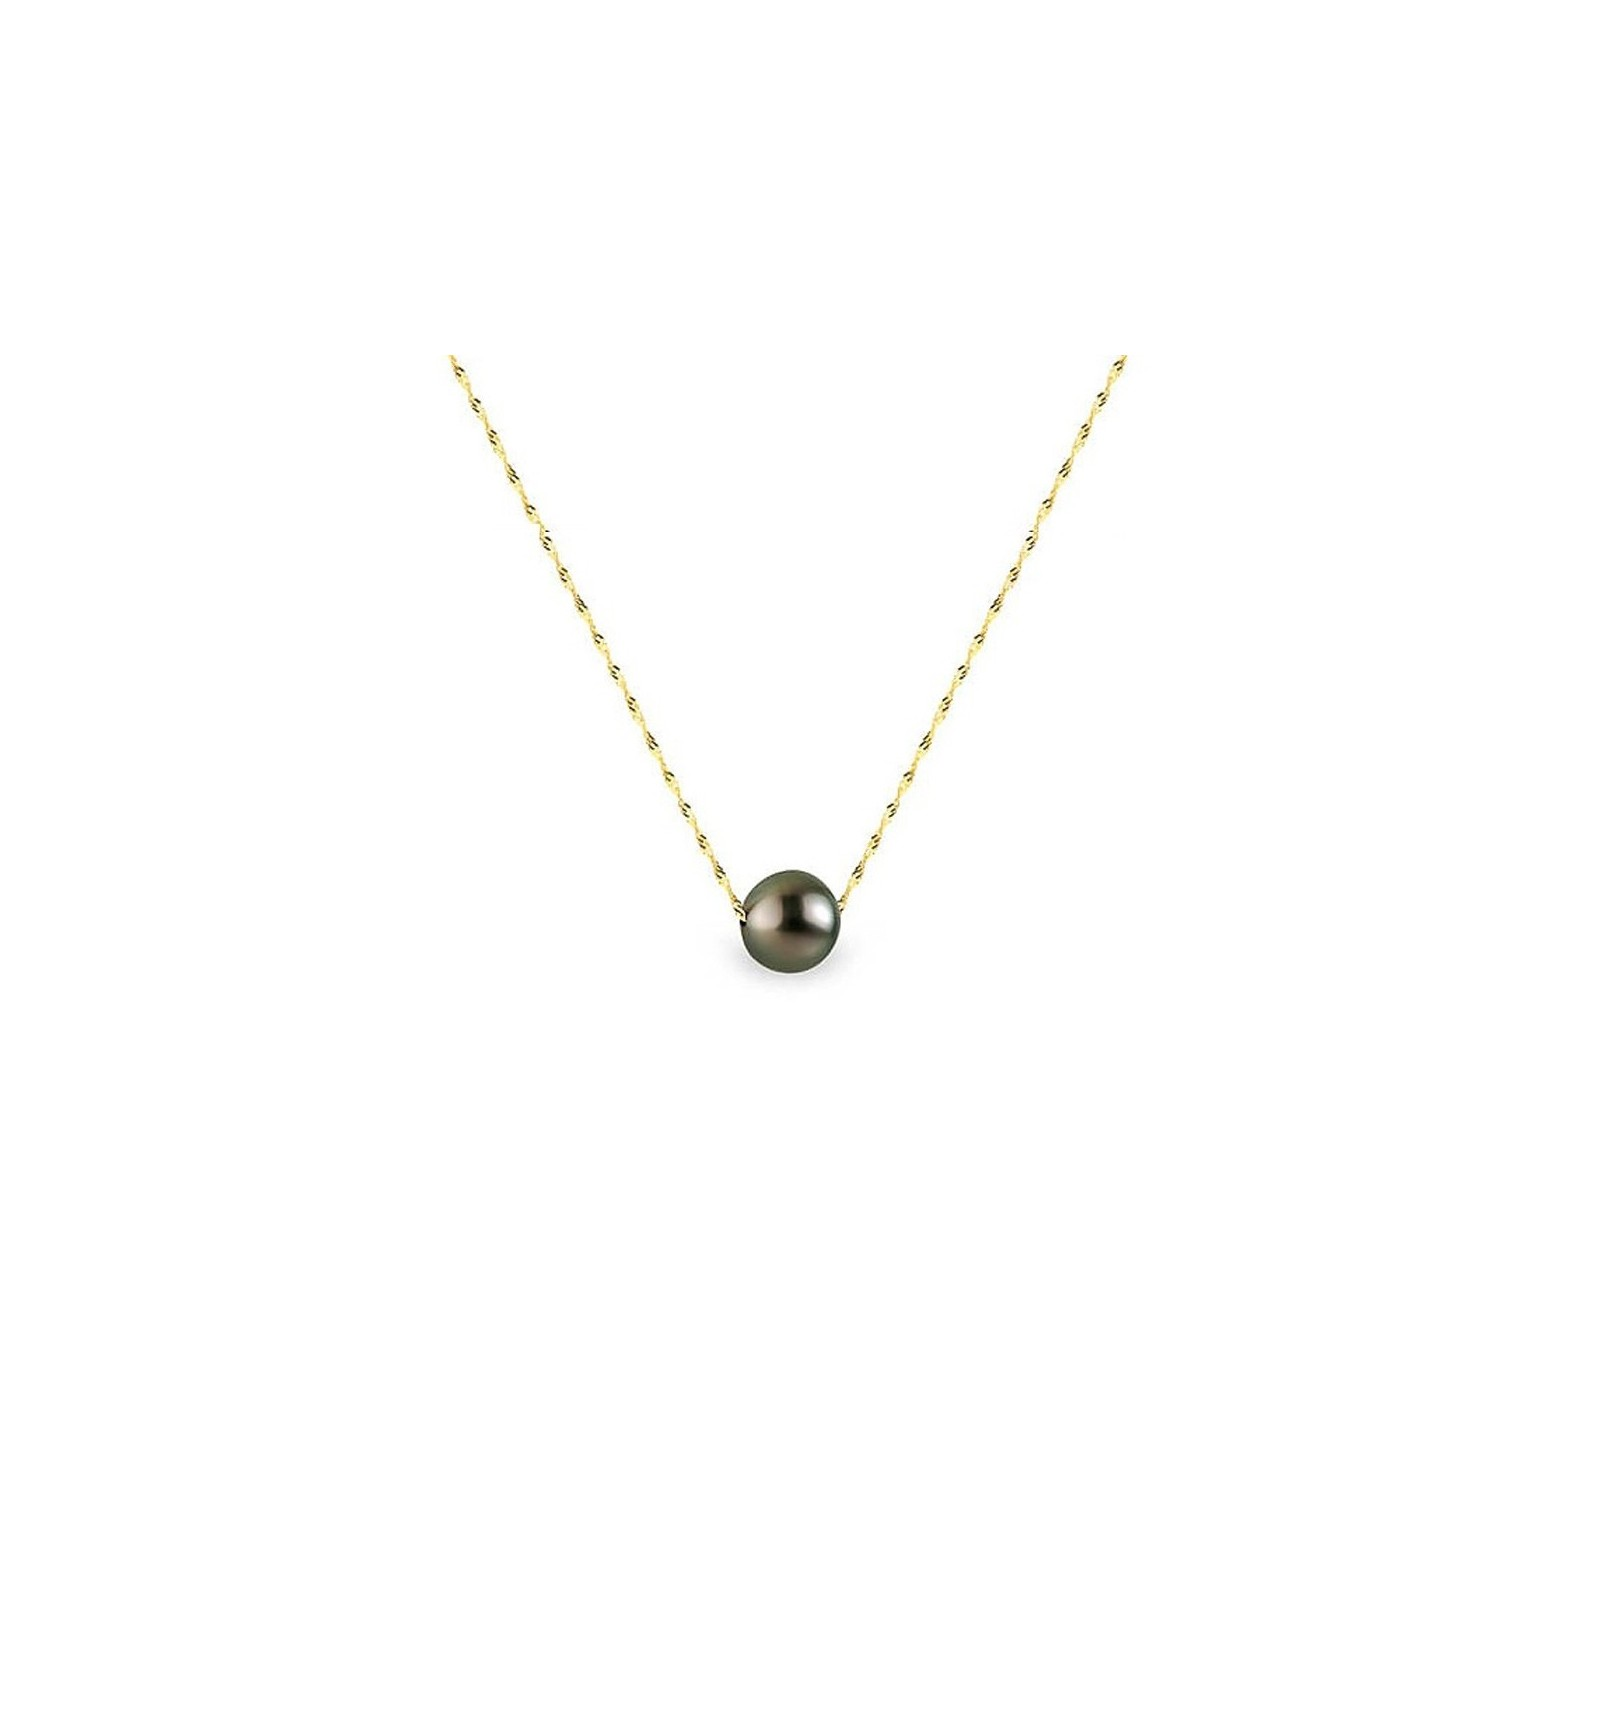 collier femme chaine or